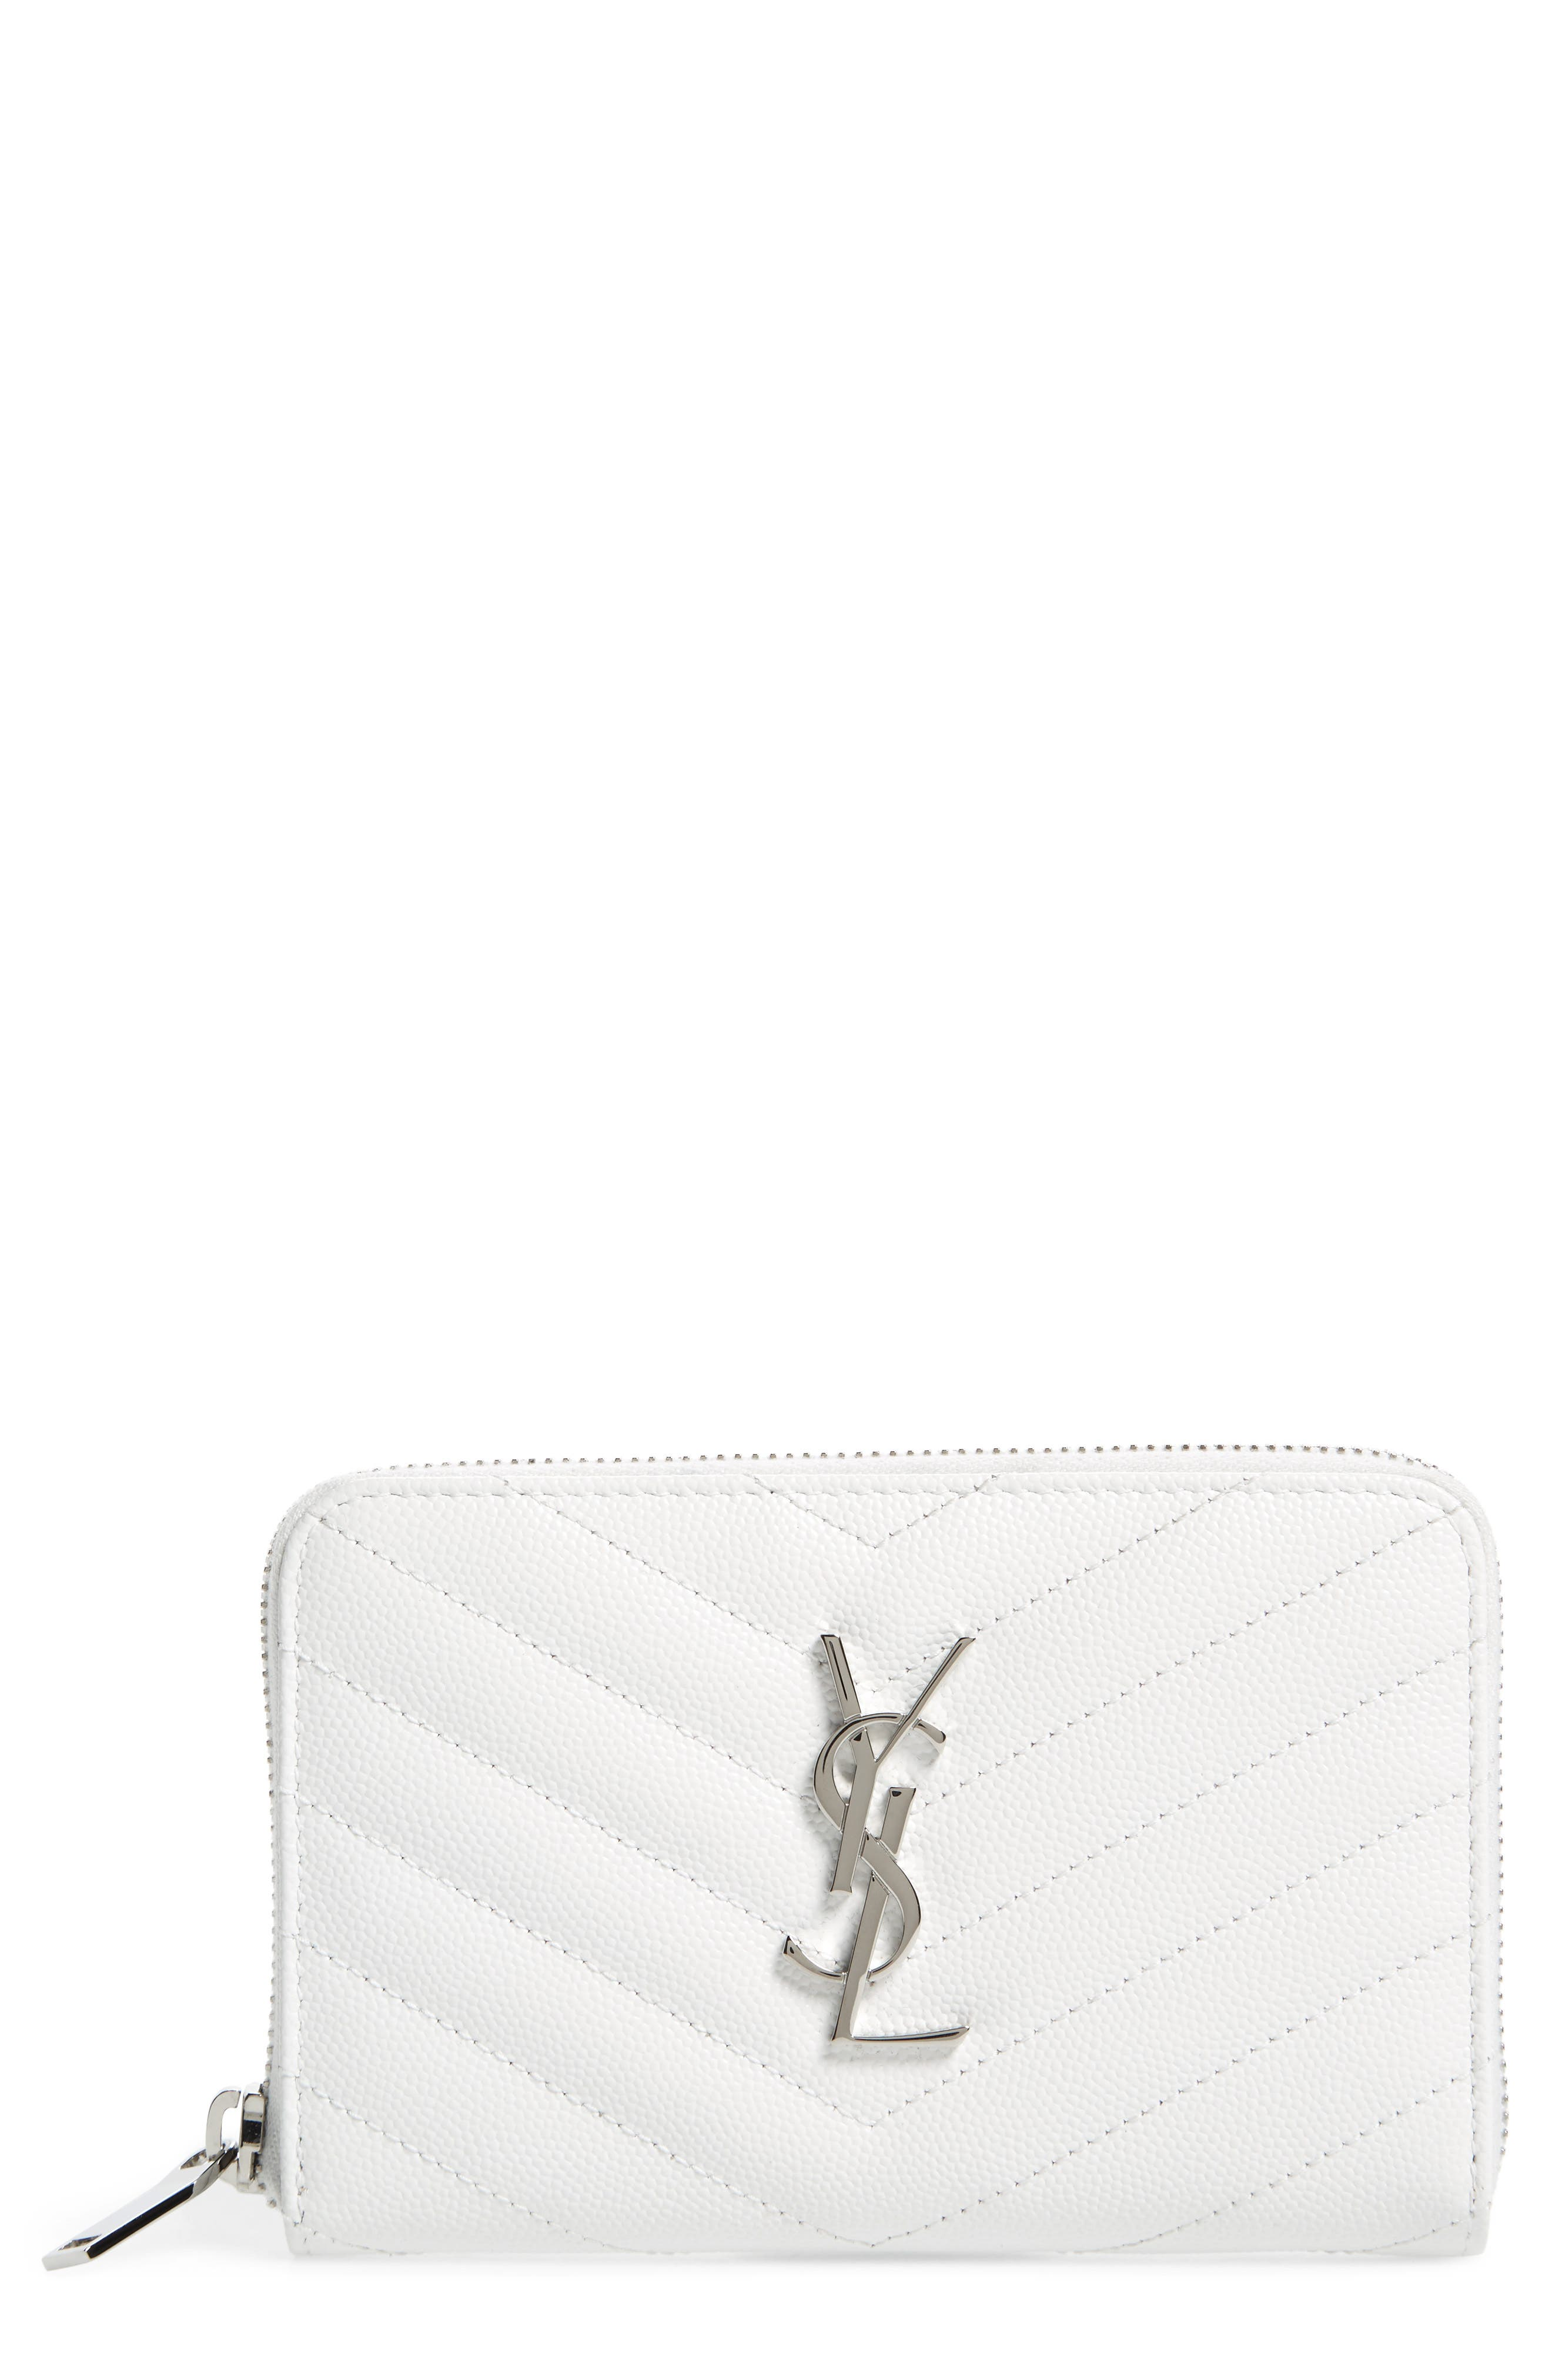 Main Image - Saint Laurent Small Grained Leather Zip Around Wallet